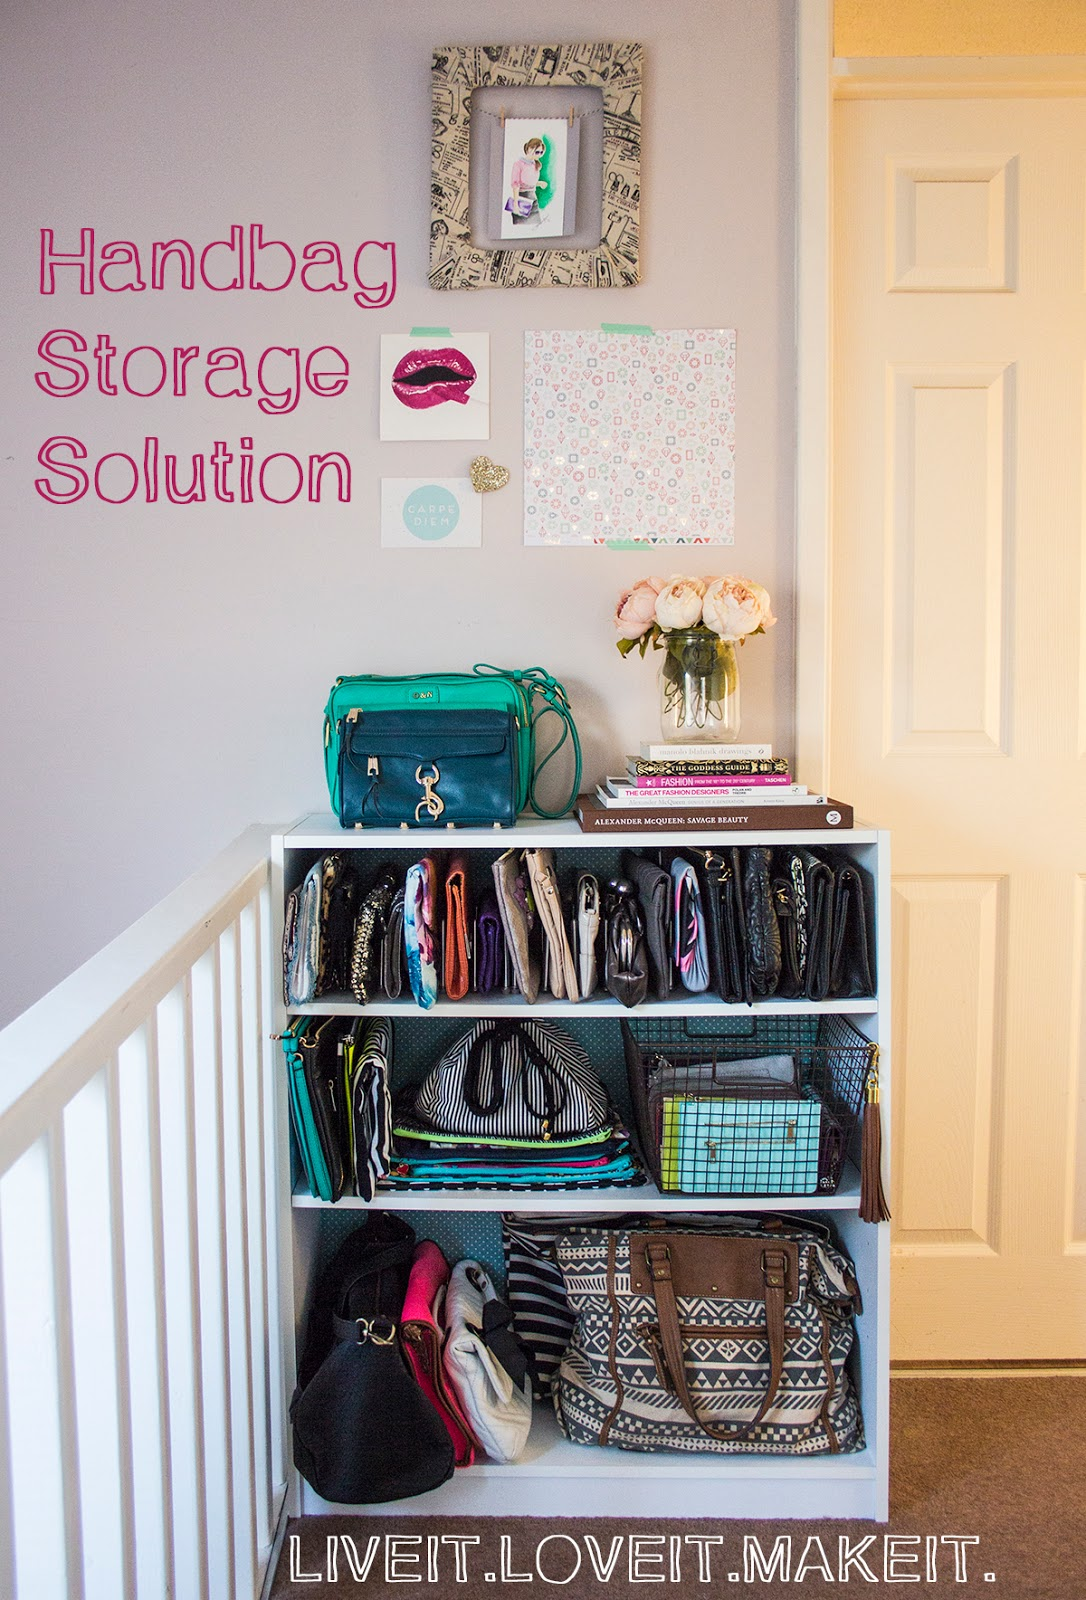 Delightful Make It: Handbag Storage Solution